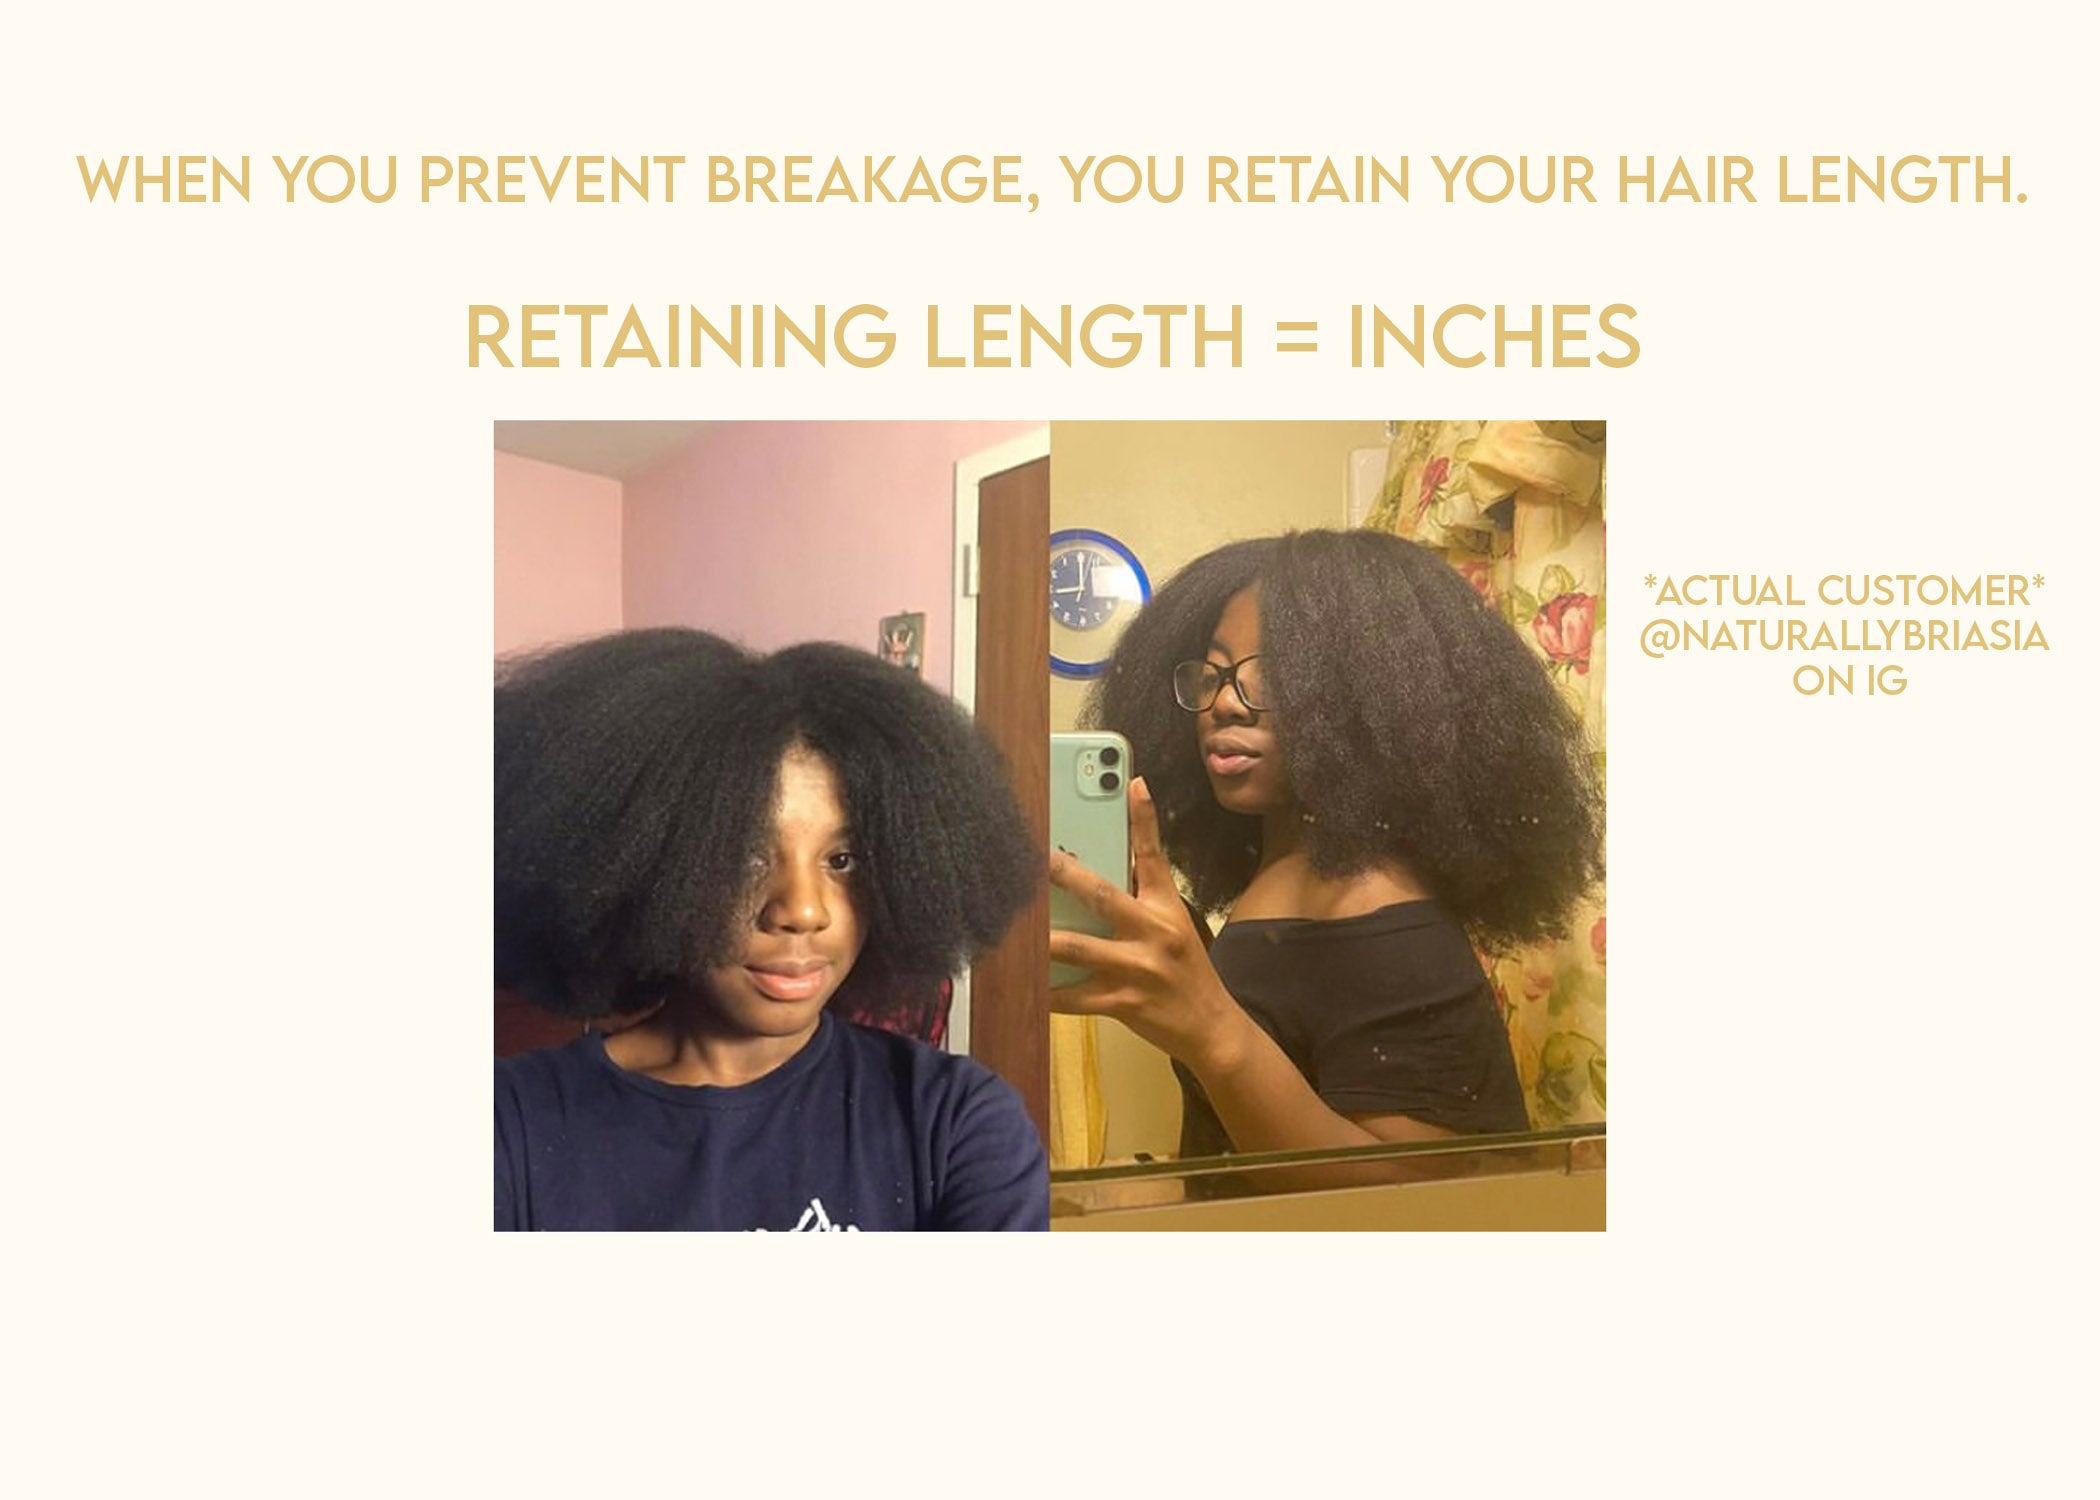 vegan hair products professional organic for black hair clean hair products best cheap natural shampoo eco friendly hair styling products